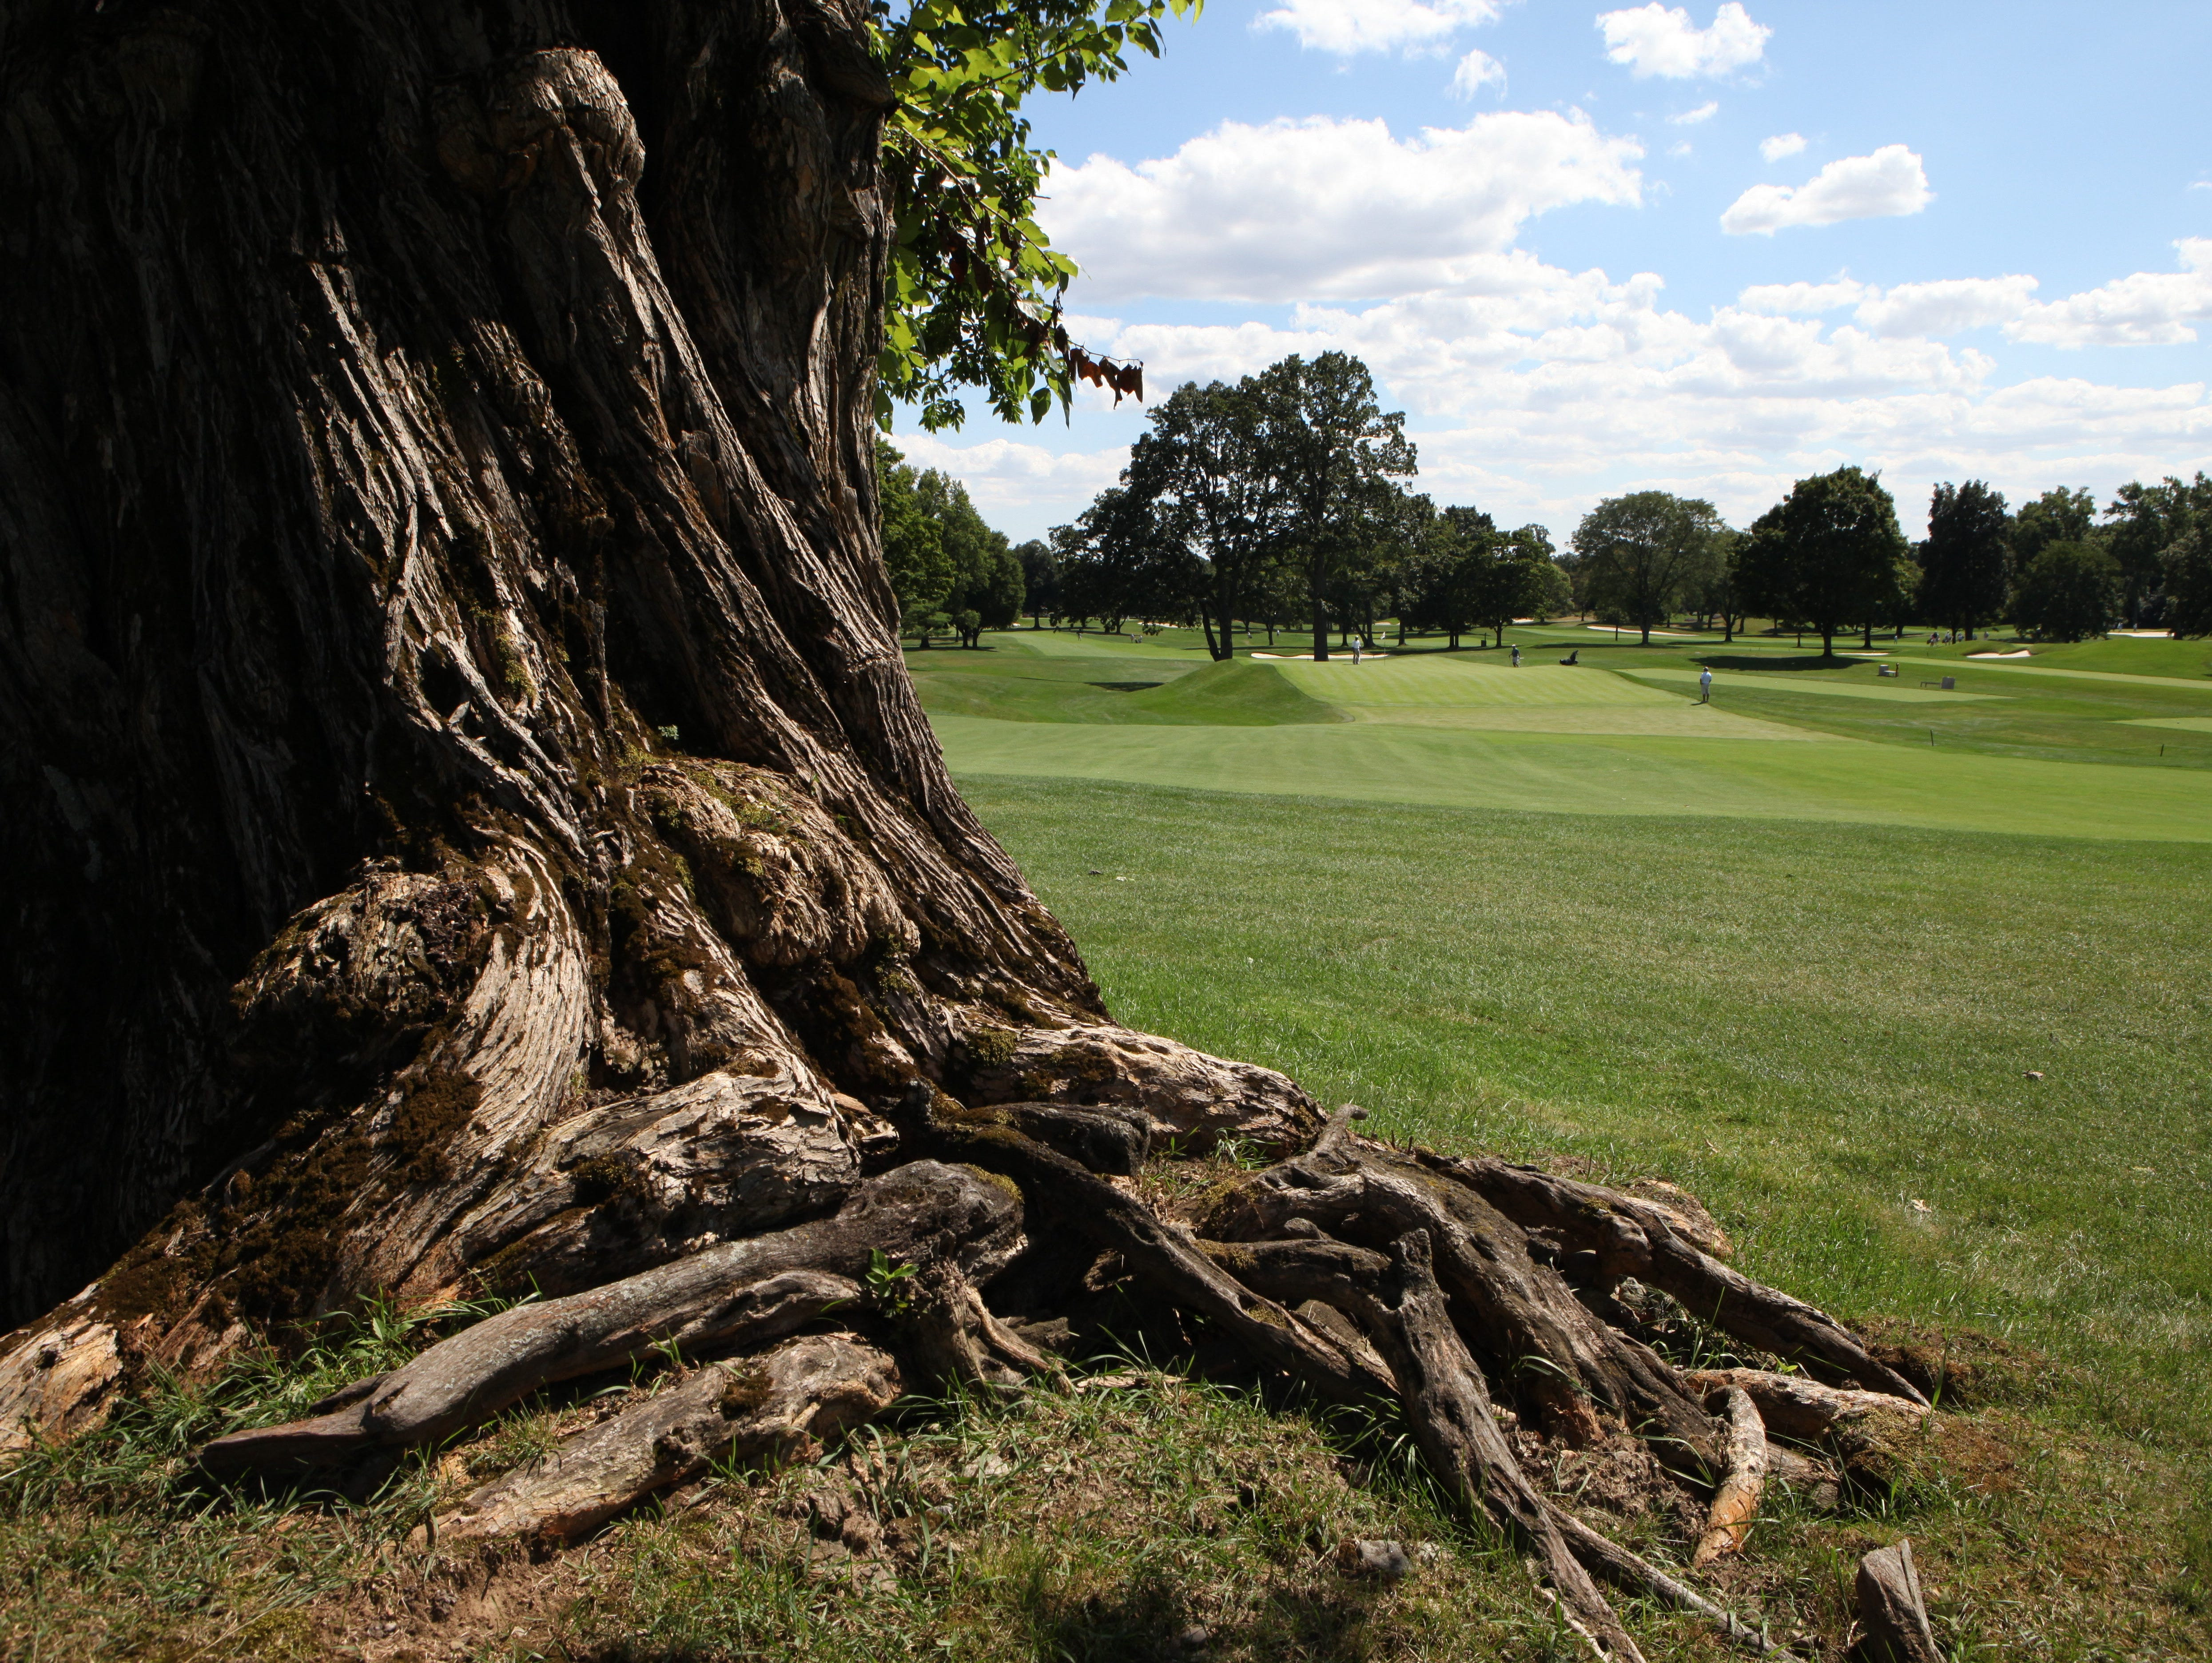 A vintage Osage Orange tree is pictured along the fairway of the 17th hole on the East Course at the Winged Foot Golf Club in Mamaroneck, Aug. 13, 2015. The East Course, recently restored, is hosting the USGA Four-Ball Championship next spring.